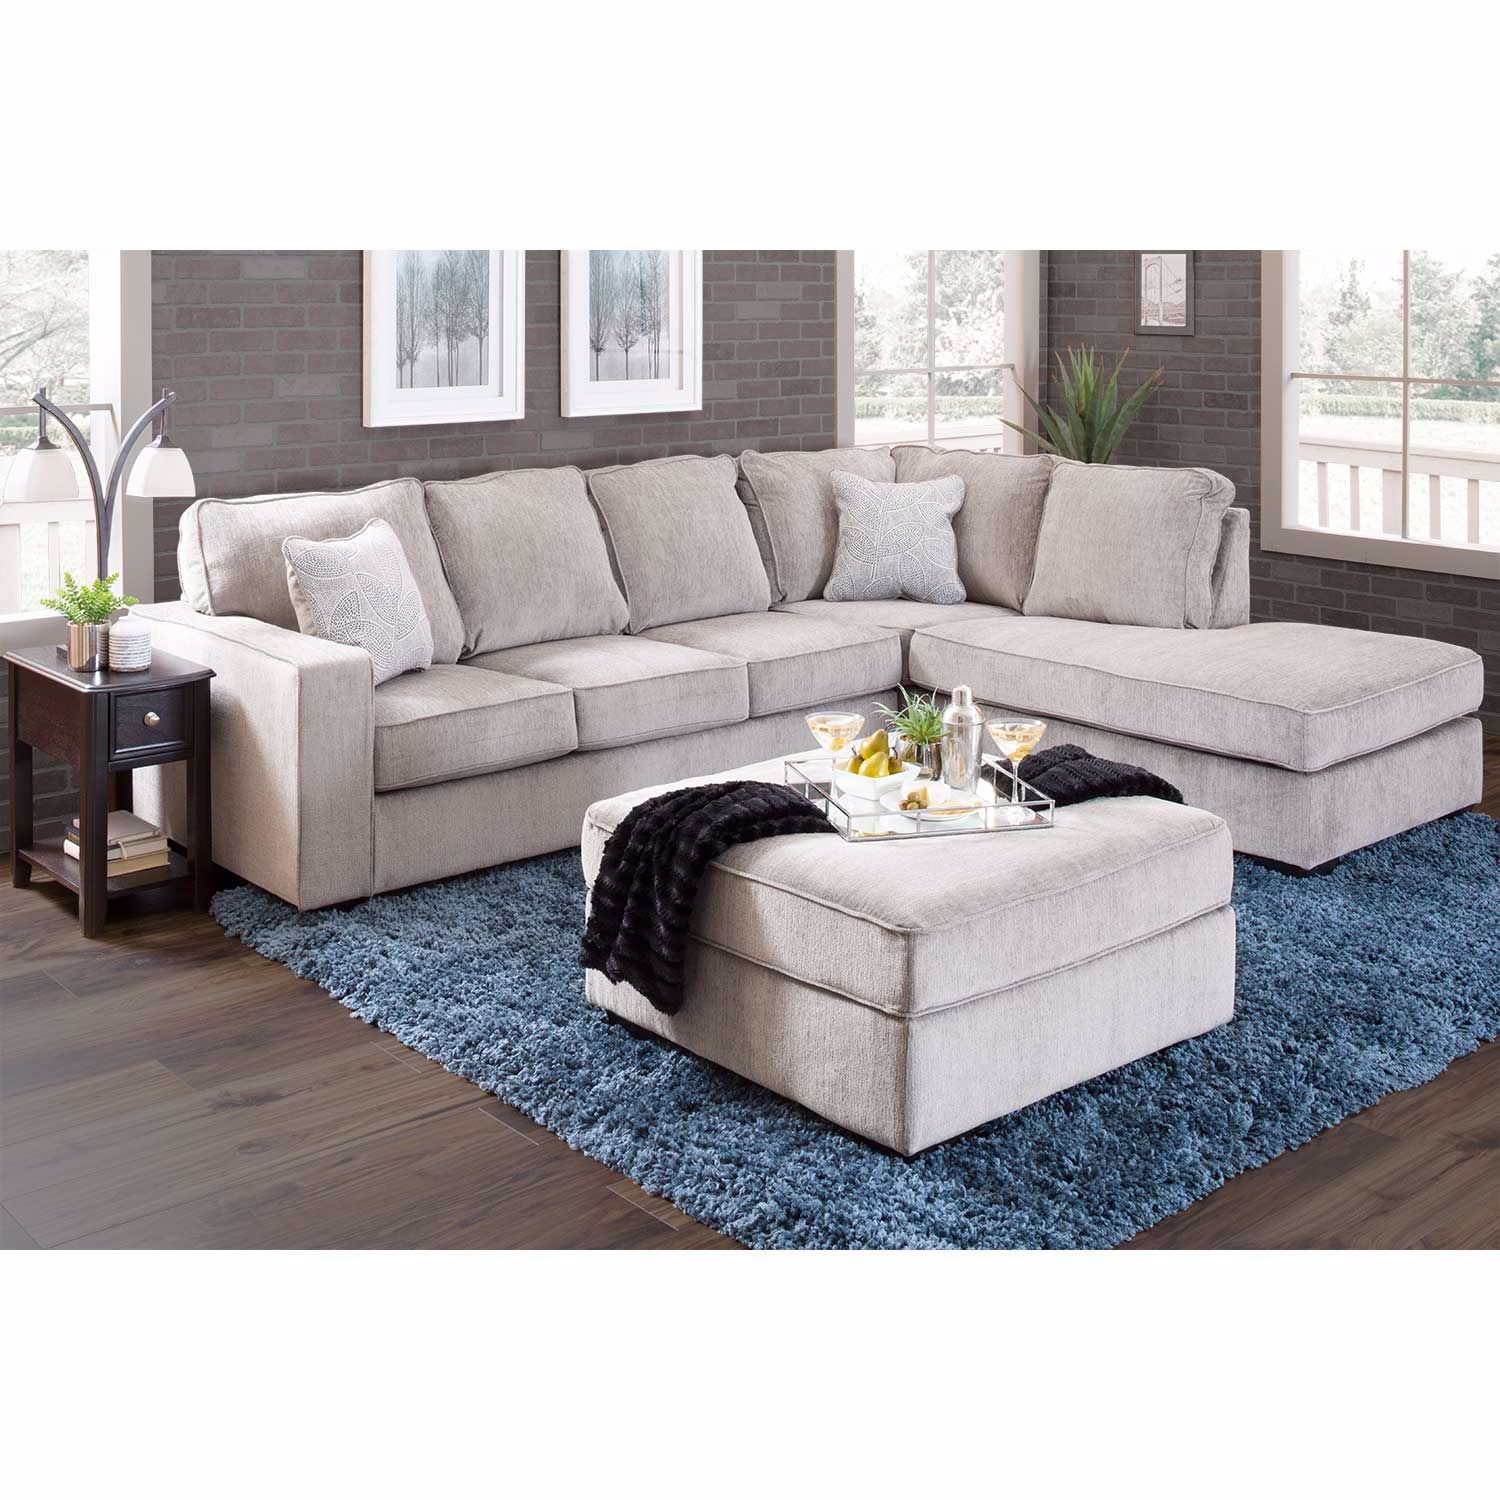 Altari Alloy 2 Pc Sleeper Sectional